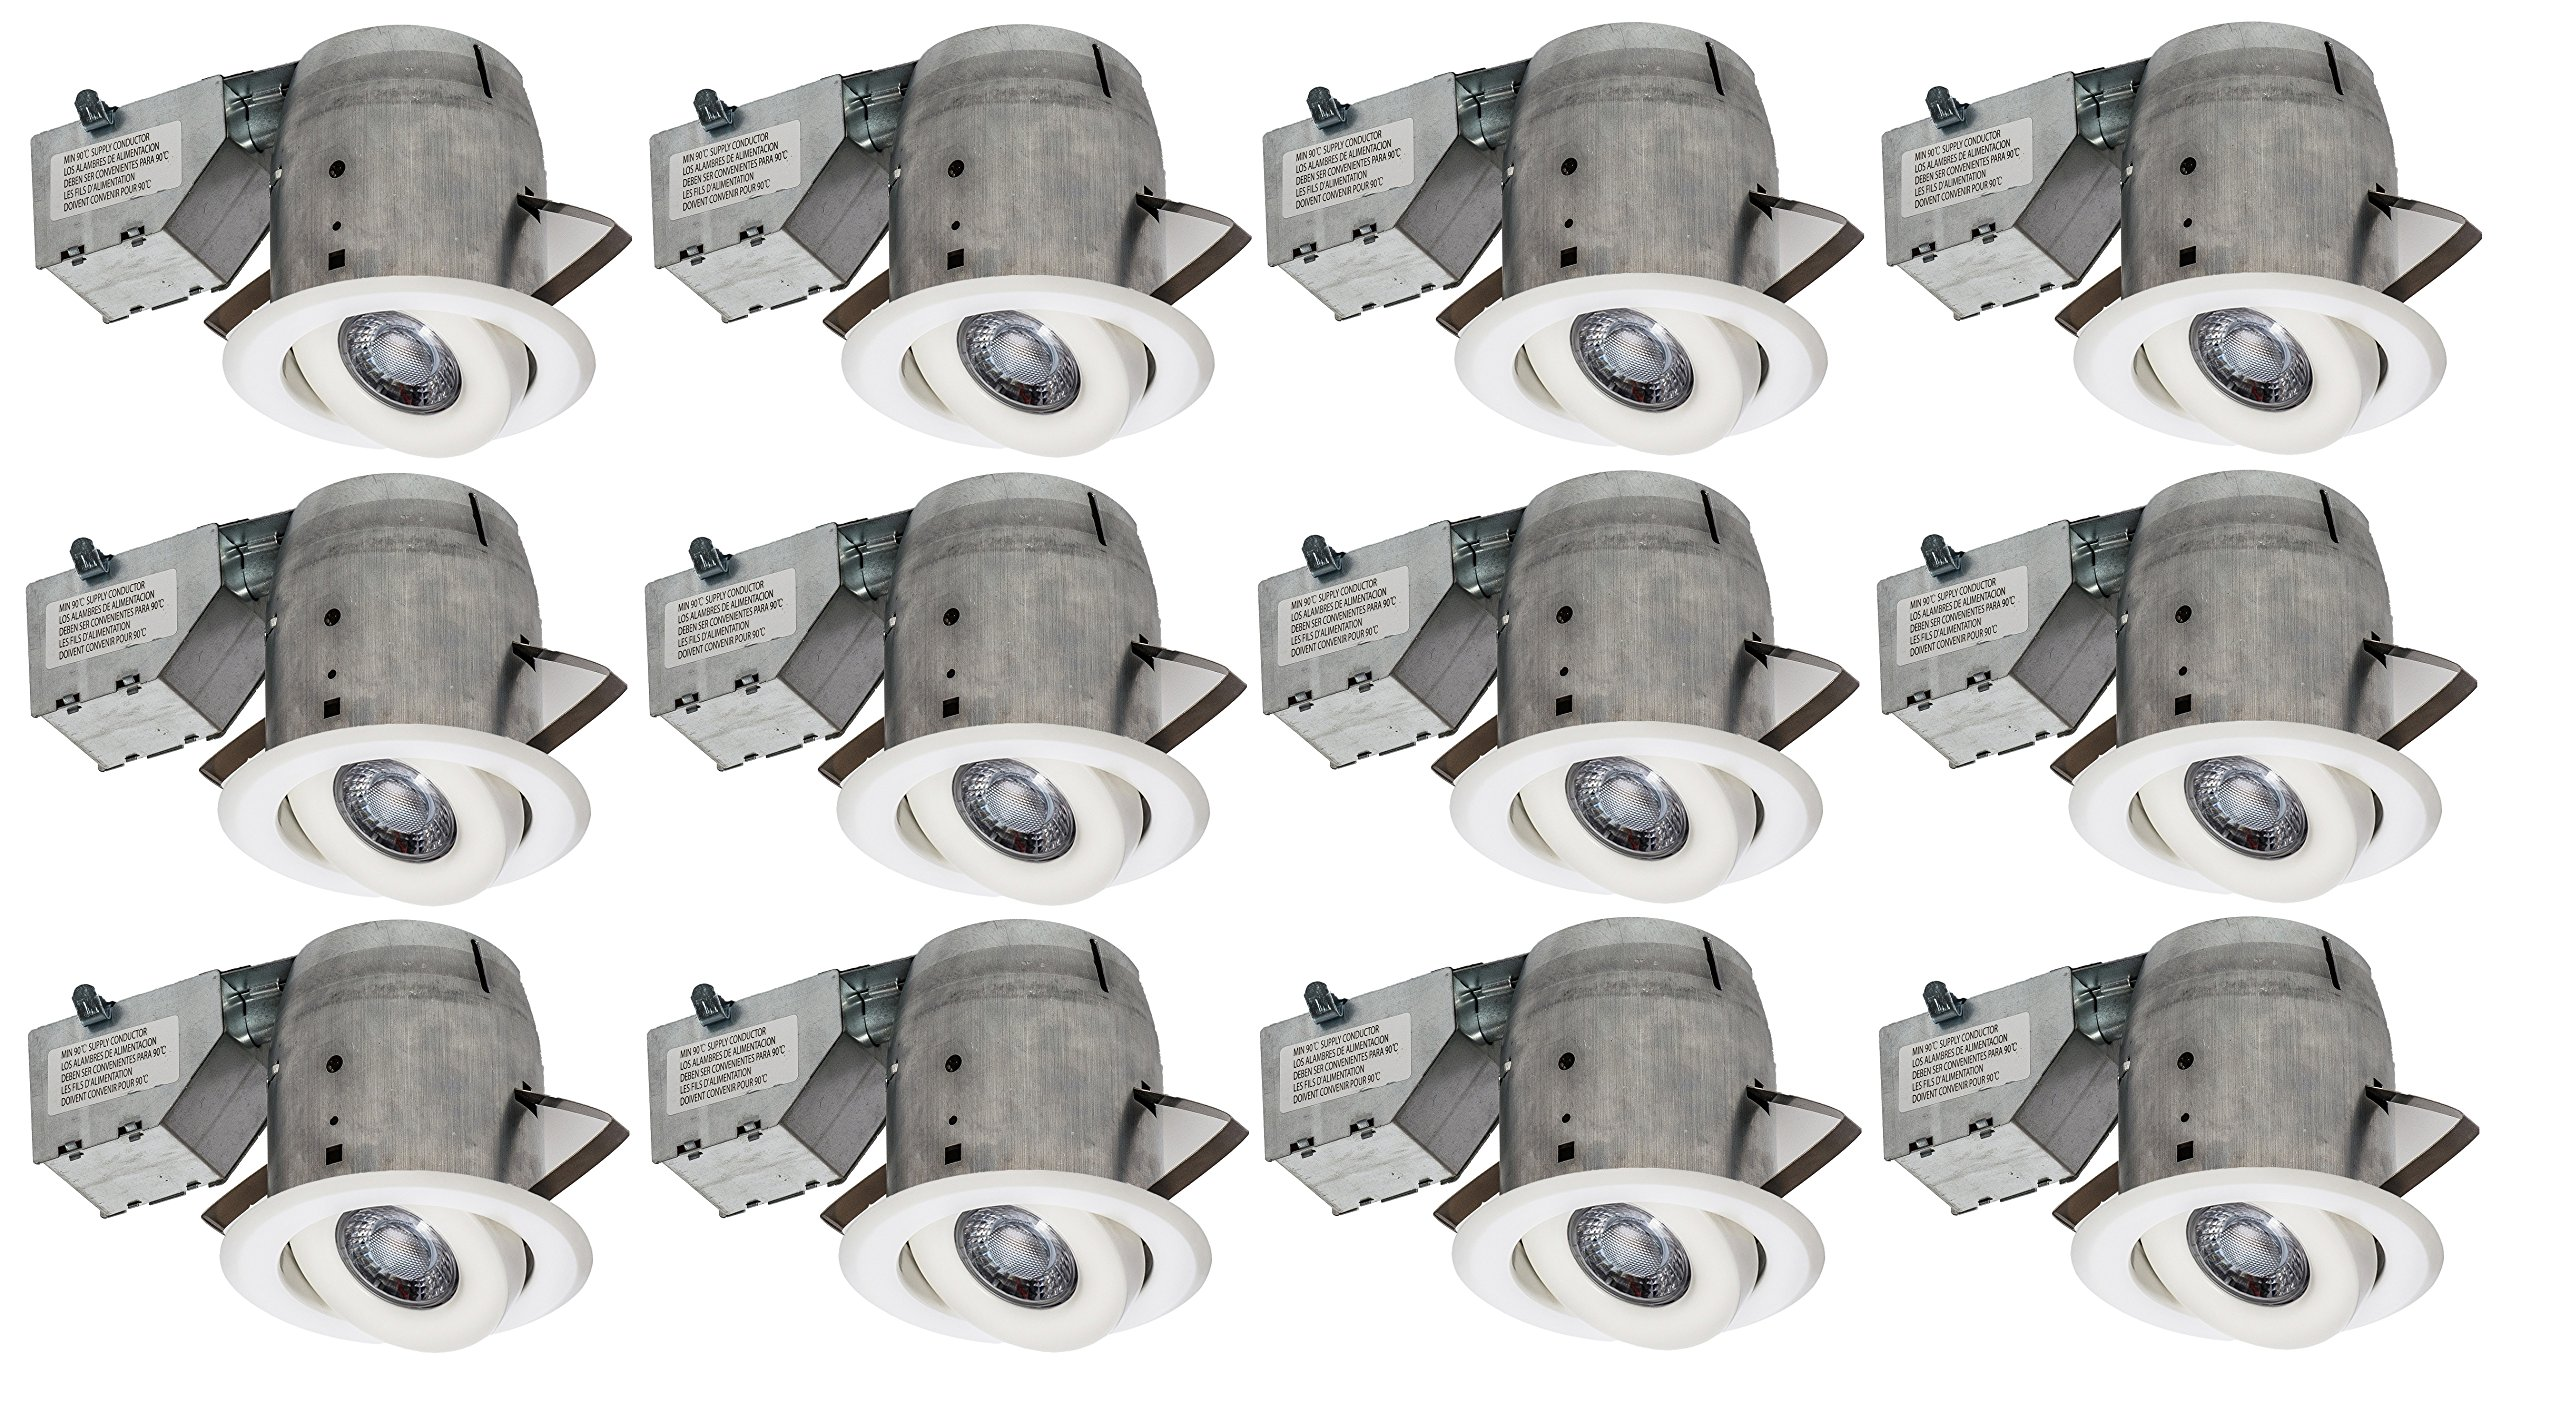 Nadair 12 PACK 4'' Swivel Dimmable Downlight Spotlight Recessed Light Energy Star Complete Kit,12 x LED Gu10 550 Lumens Bulb (50W Equivalent) Included, Ic Rated, Warm White